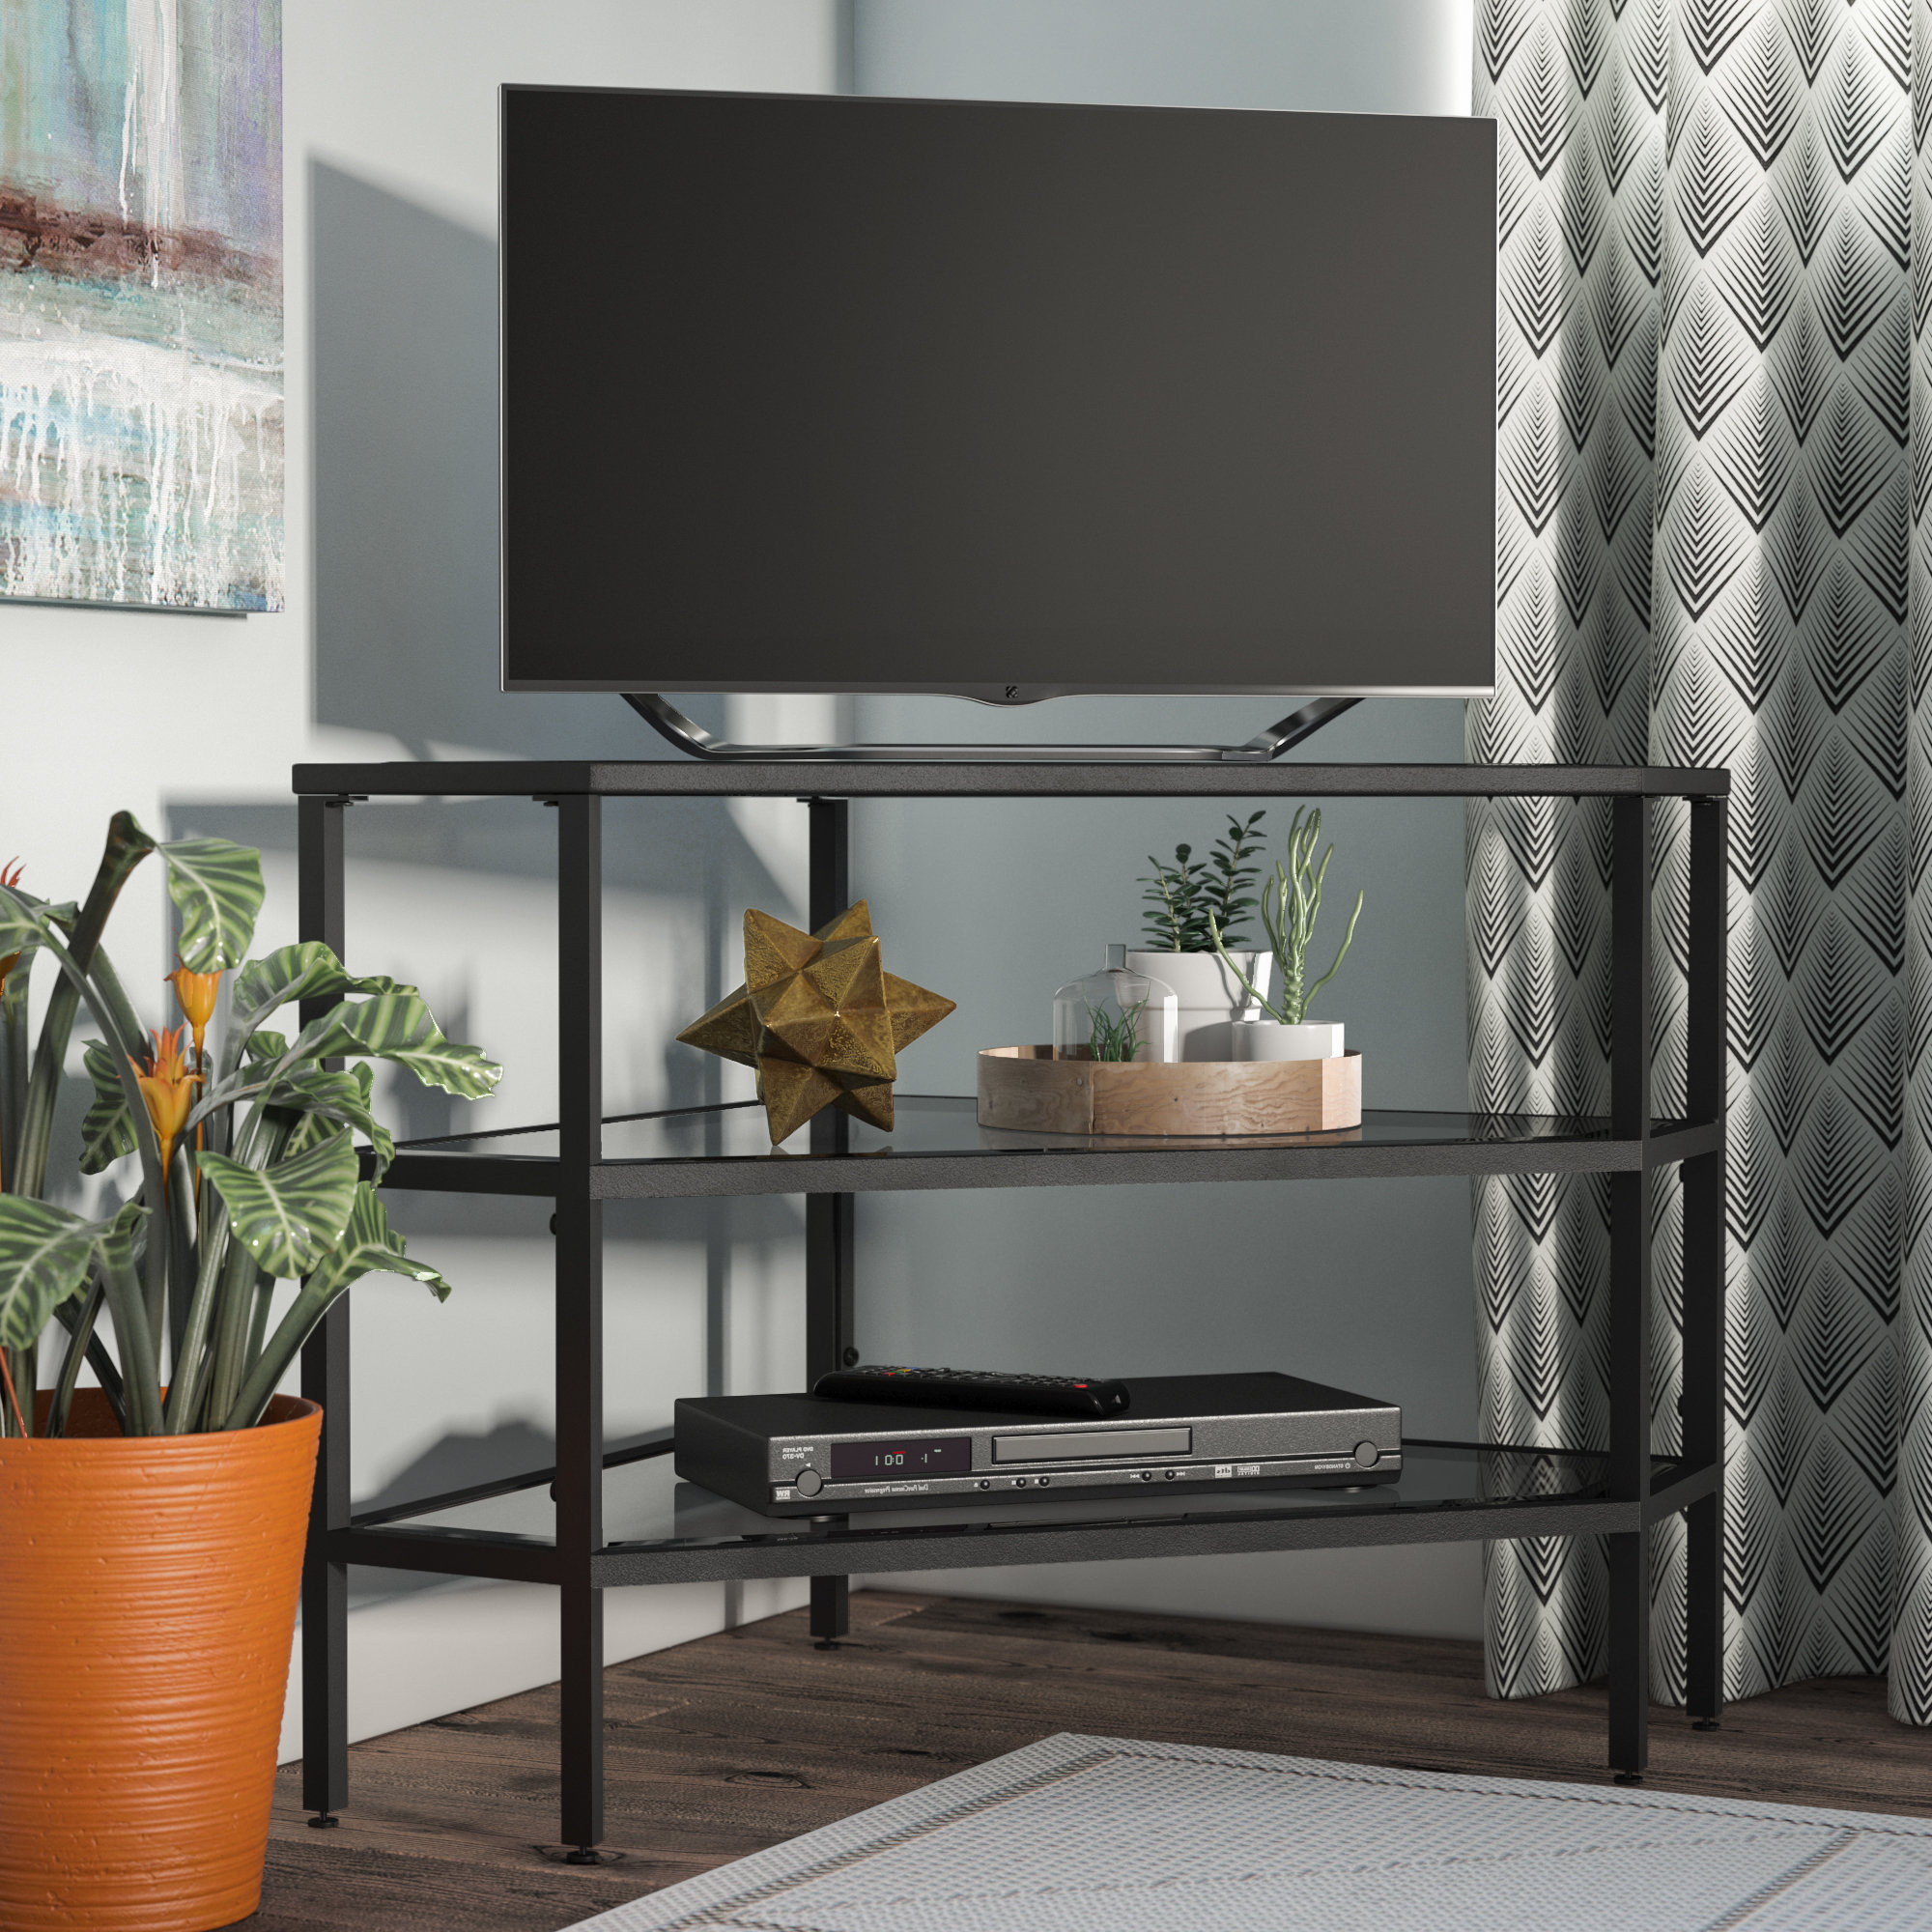 Favorite Corner Tv Stands You'll Love With Corner Tv Stands For 46 Inch Flat Screen (Gallery 1 of 20)